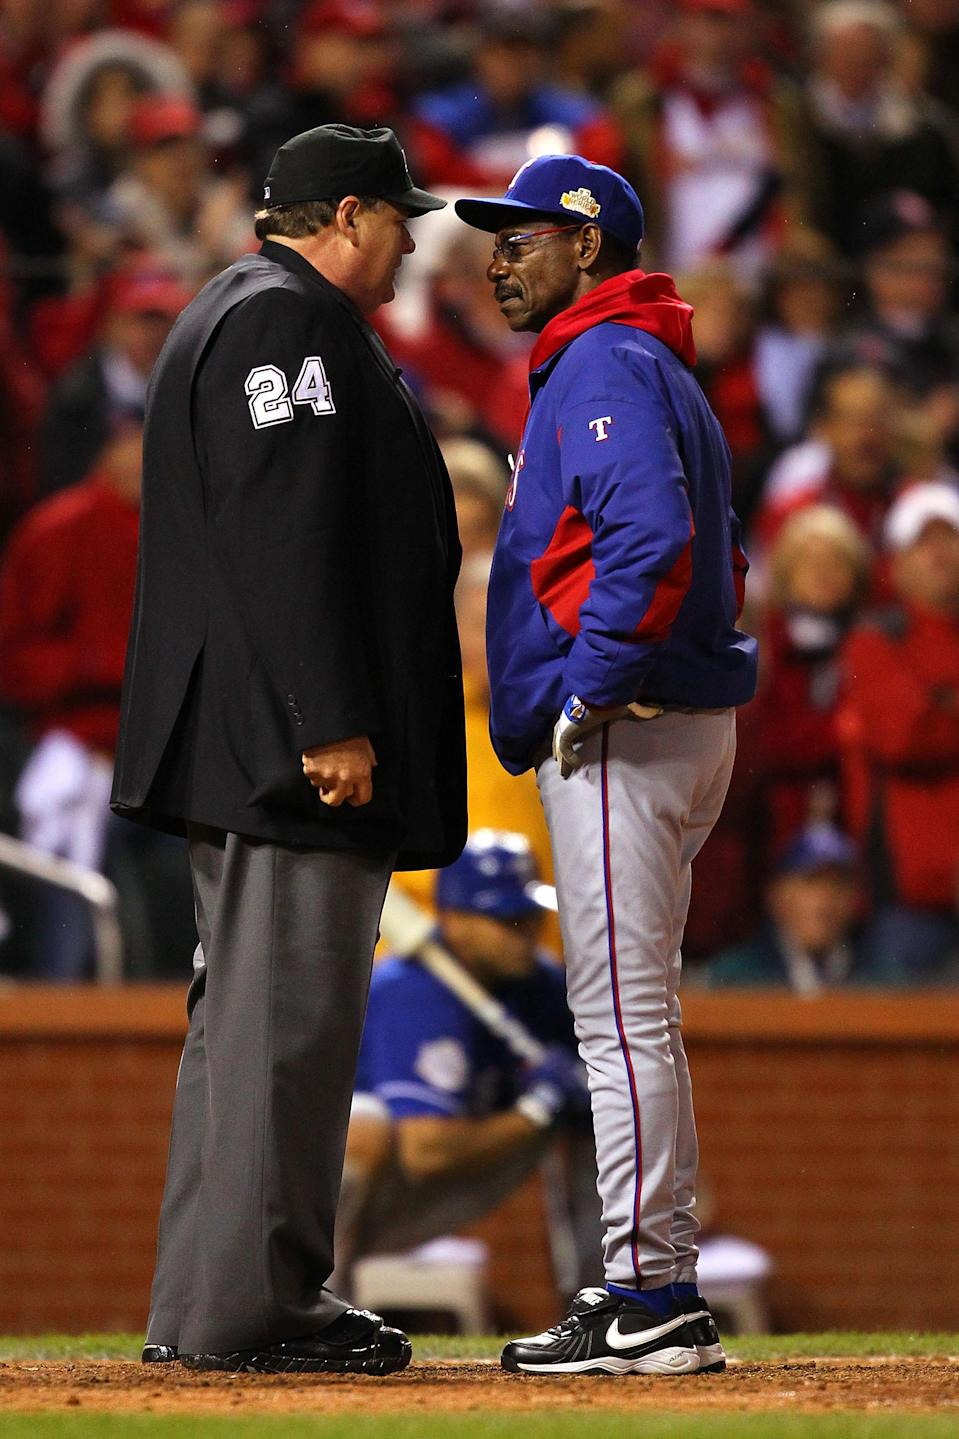 ST LOUIS, MO - OCTOBER 19: Manager Ron Washington of the Texas Rangers argues a call with home plate umpire Jerry Layne after Adrian Beltre #29 was called out on a disputed call in the ninth inning during Game One of the MLB World Series against the St. Louis Cardinals at Busch Stadium on October 19, 2011 in St Louis, Missouri. The Cardinals won 3-2. (Photo by Dilip Vishwanat/Getty Images)